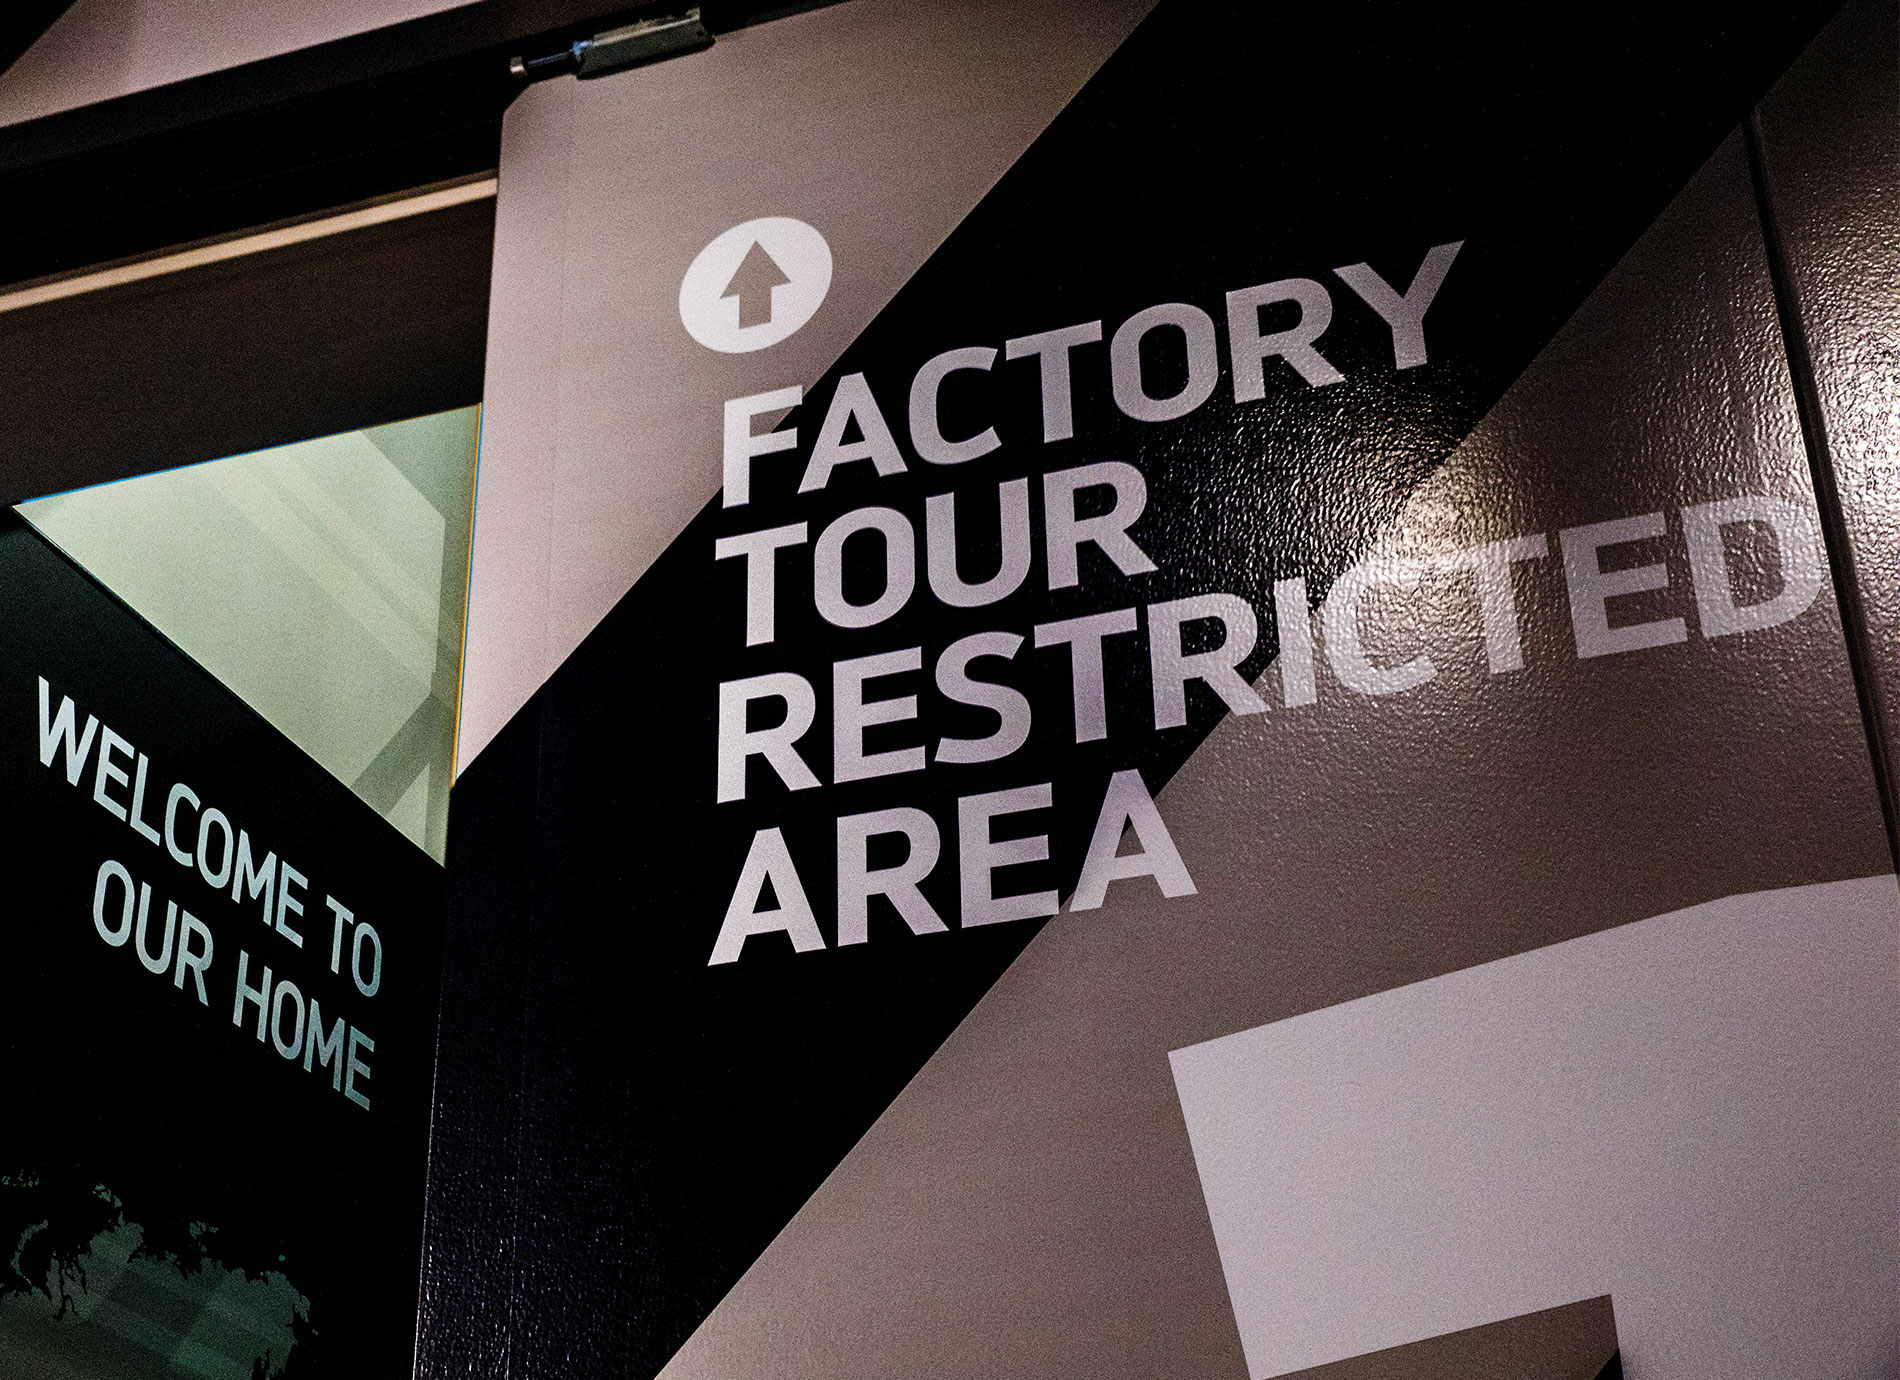 Triumph Factory Tour Booking